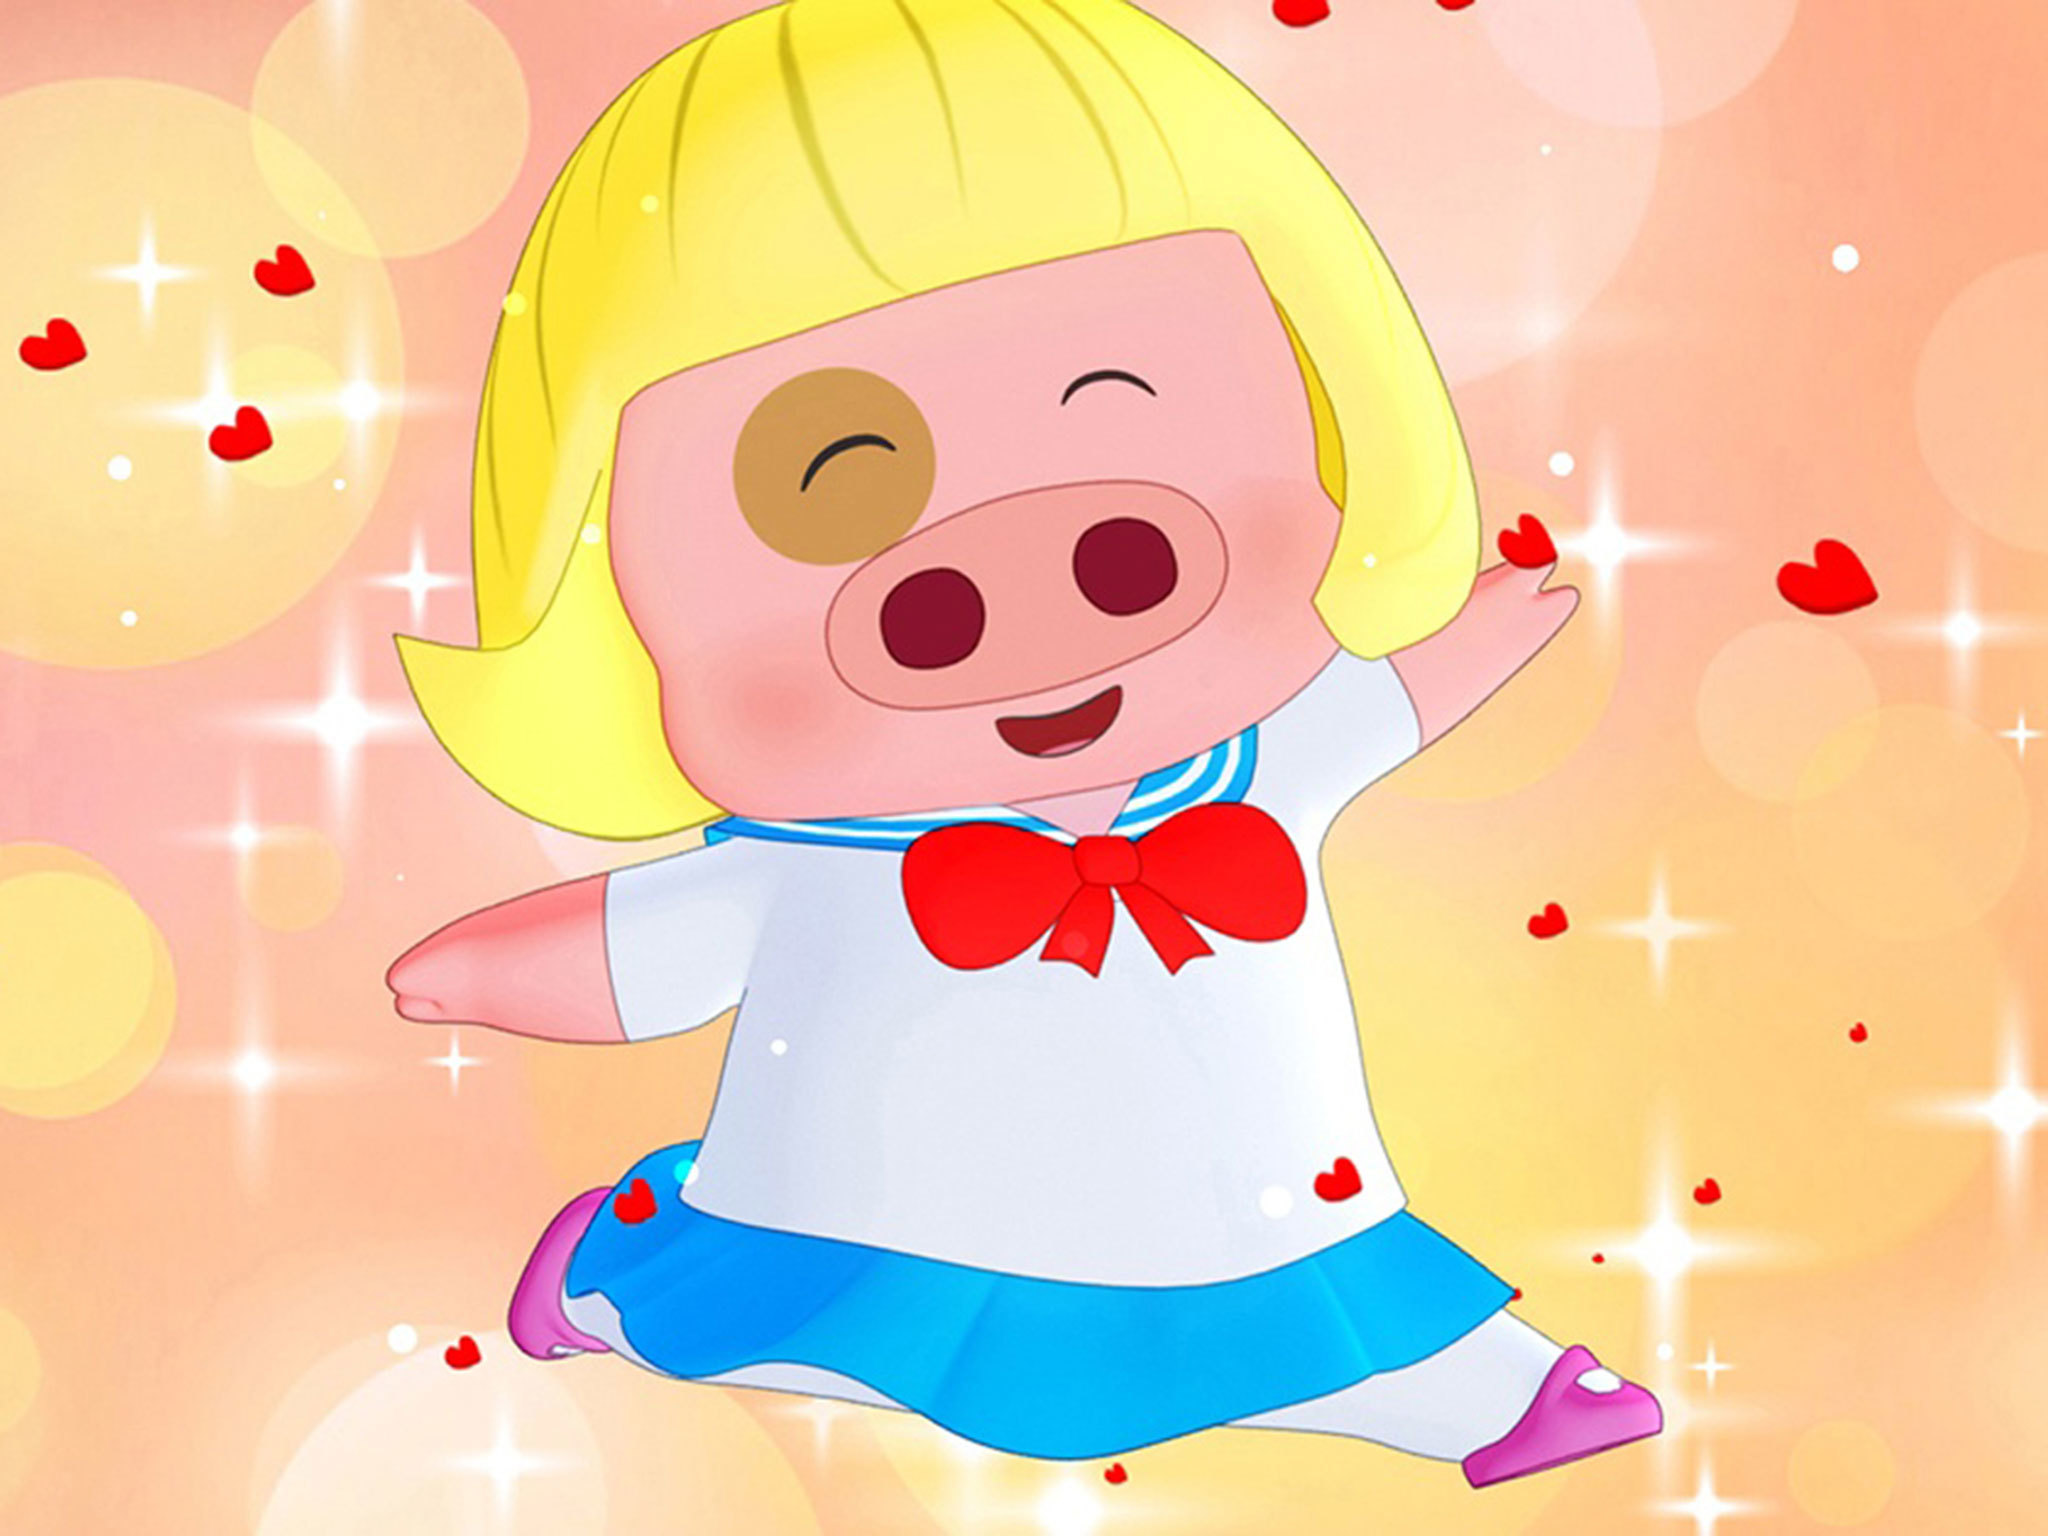 McDull: Rice of the Rice Cooker